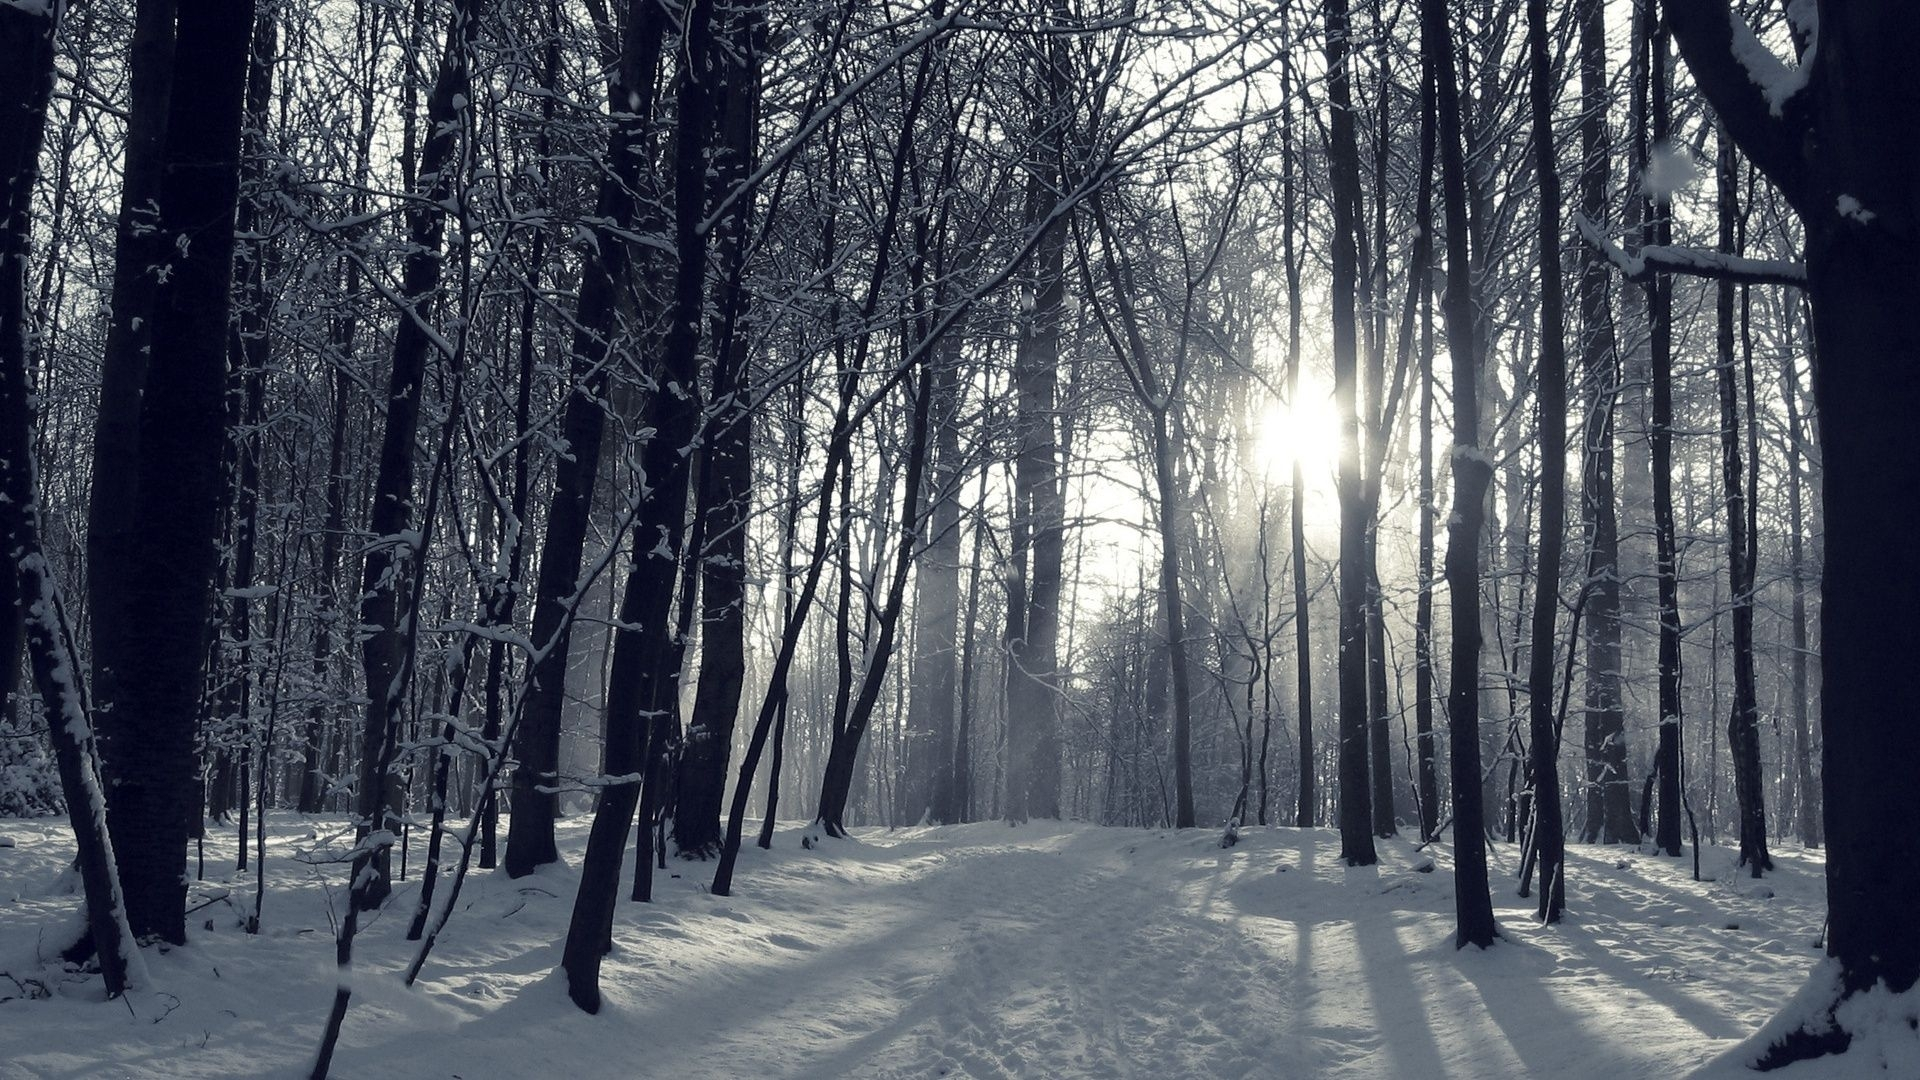 trees snow trail trees path winter forest nature desktop